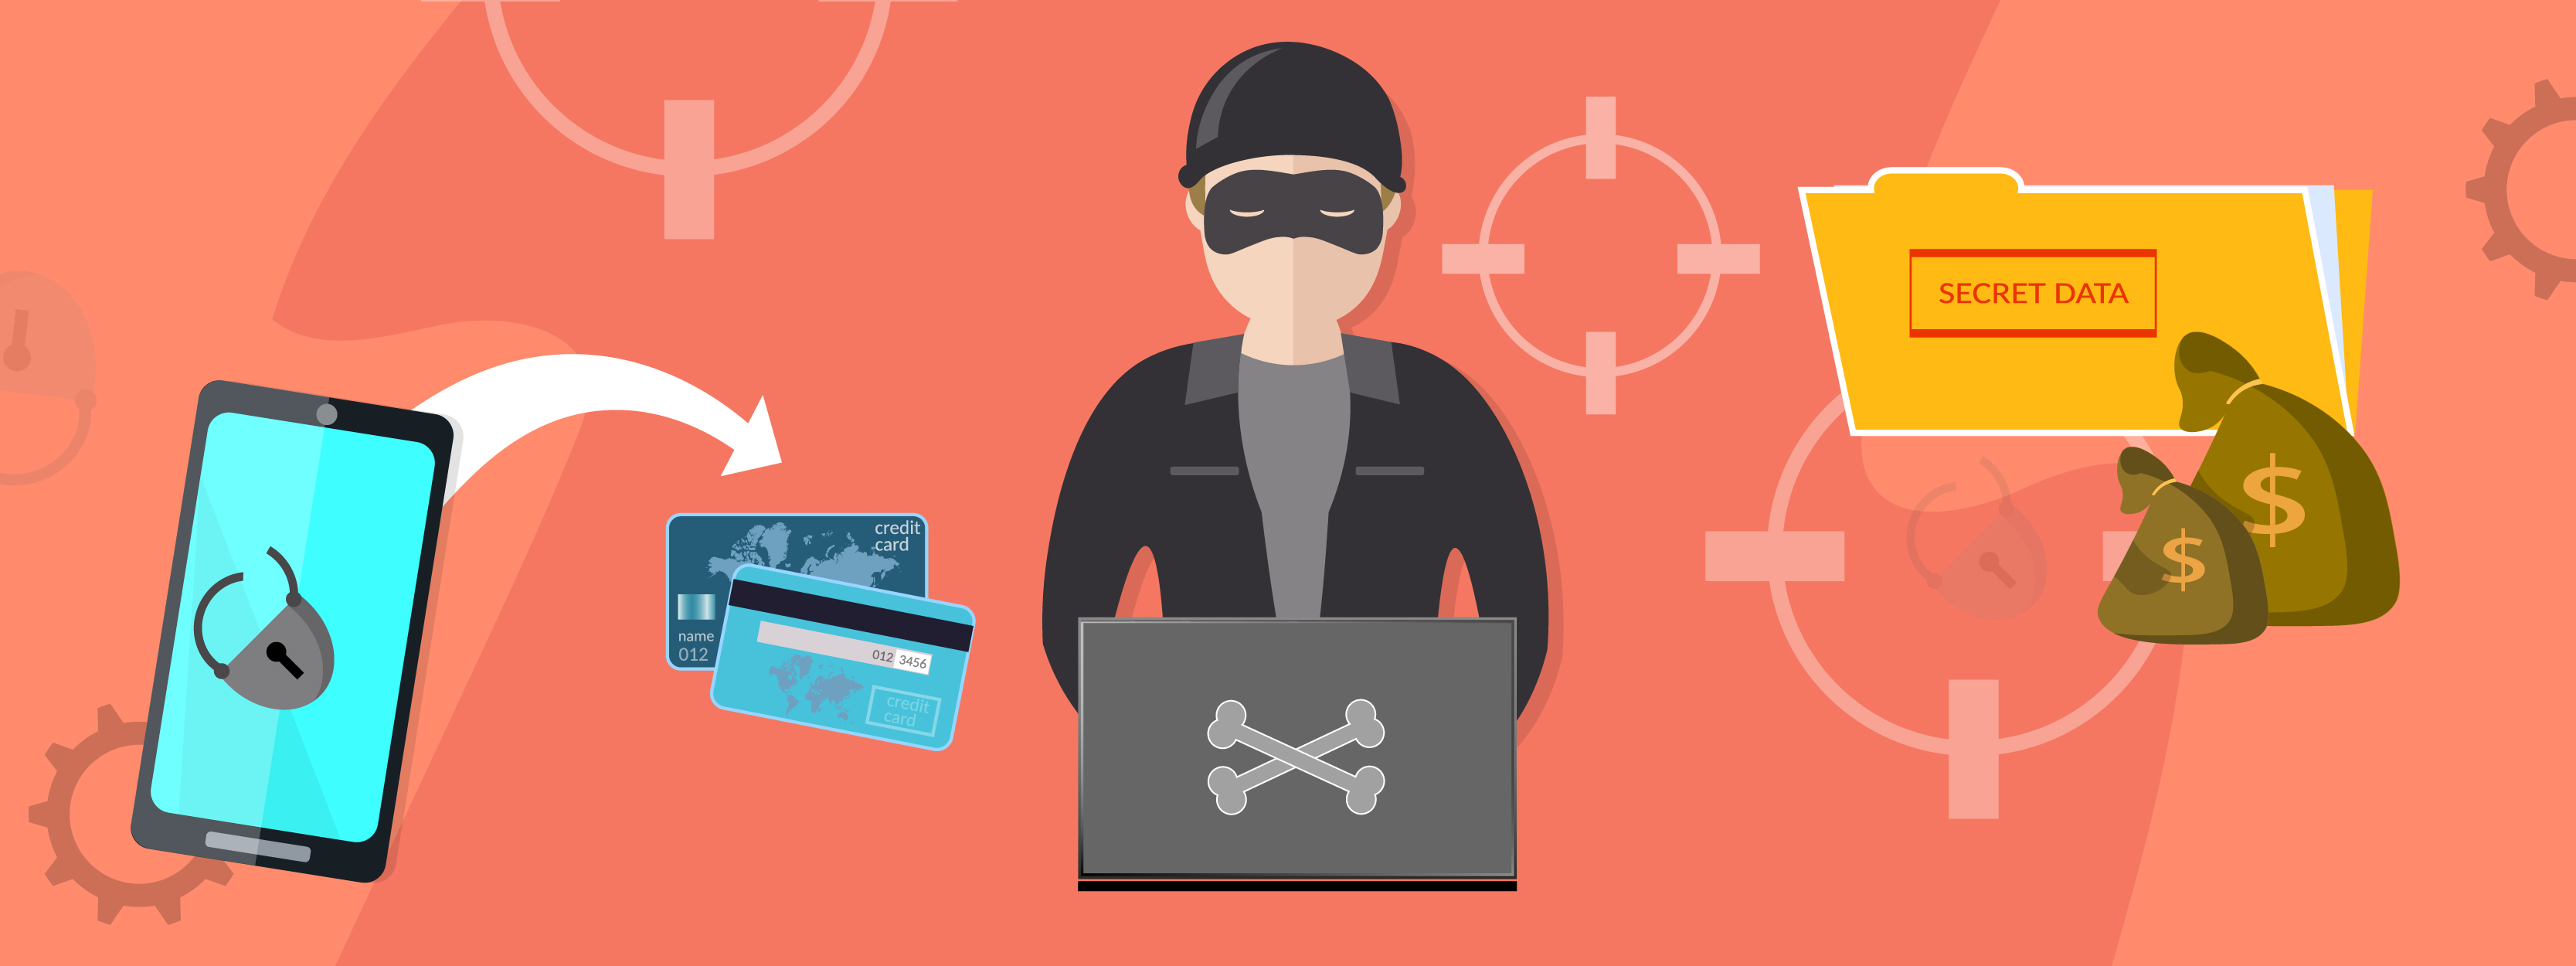 Cyber Threats Such As Identity Theft And Data Breach Continues To Claim More Victims